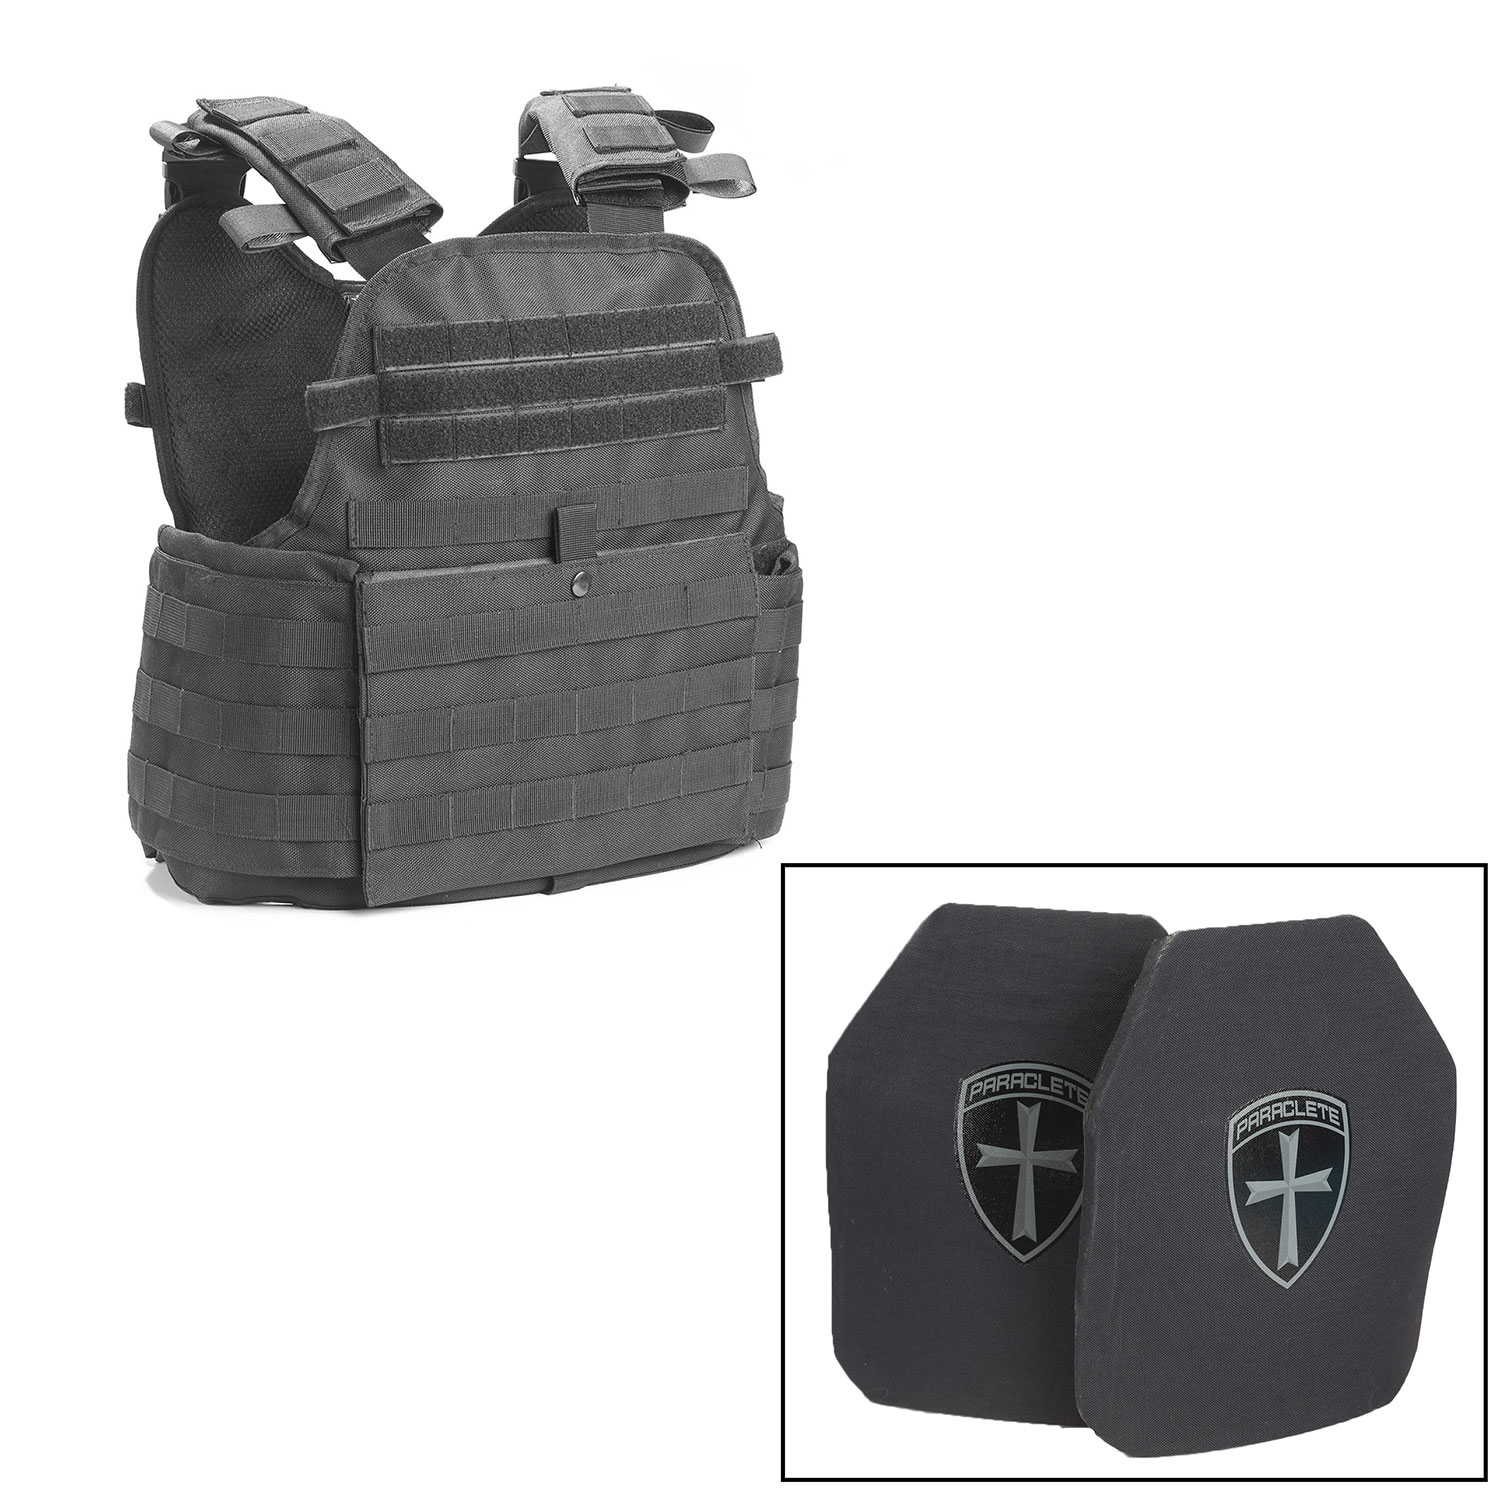 Galls Active Shooter Body Armor Kit